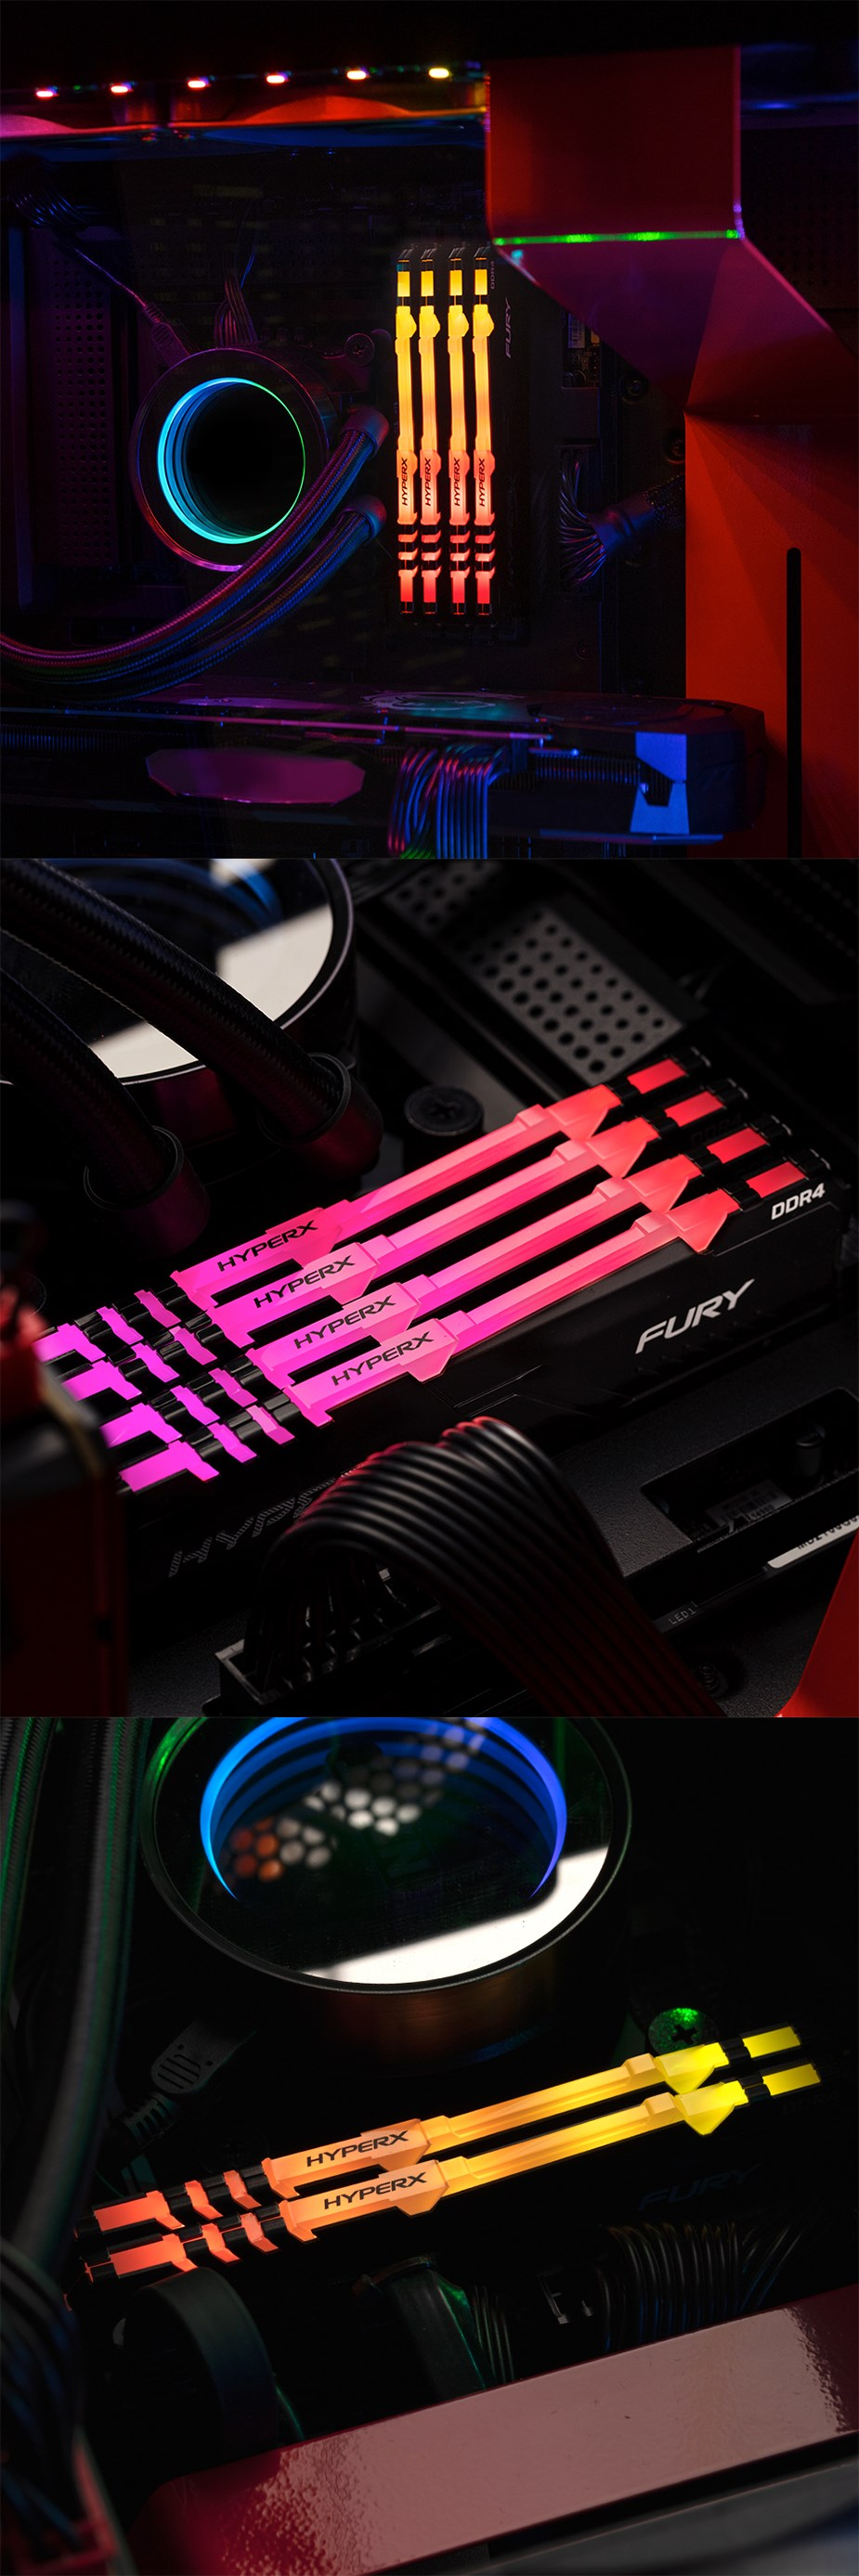 Kingston HyperX Fury RGB Memory - Overview 2